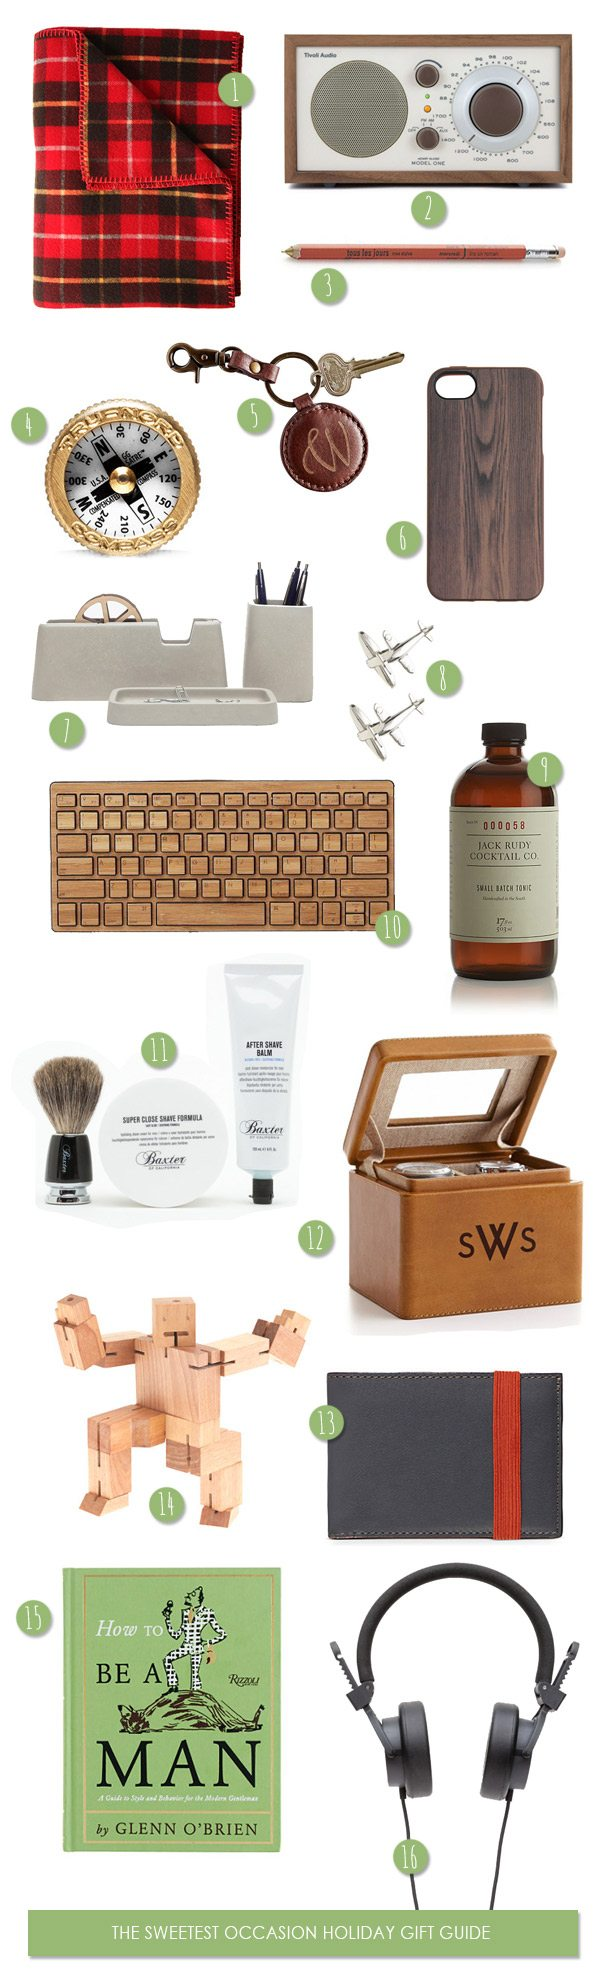 Holiday Gifts for Guys | The Sweetest Occasion